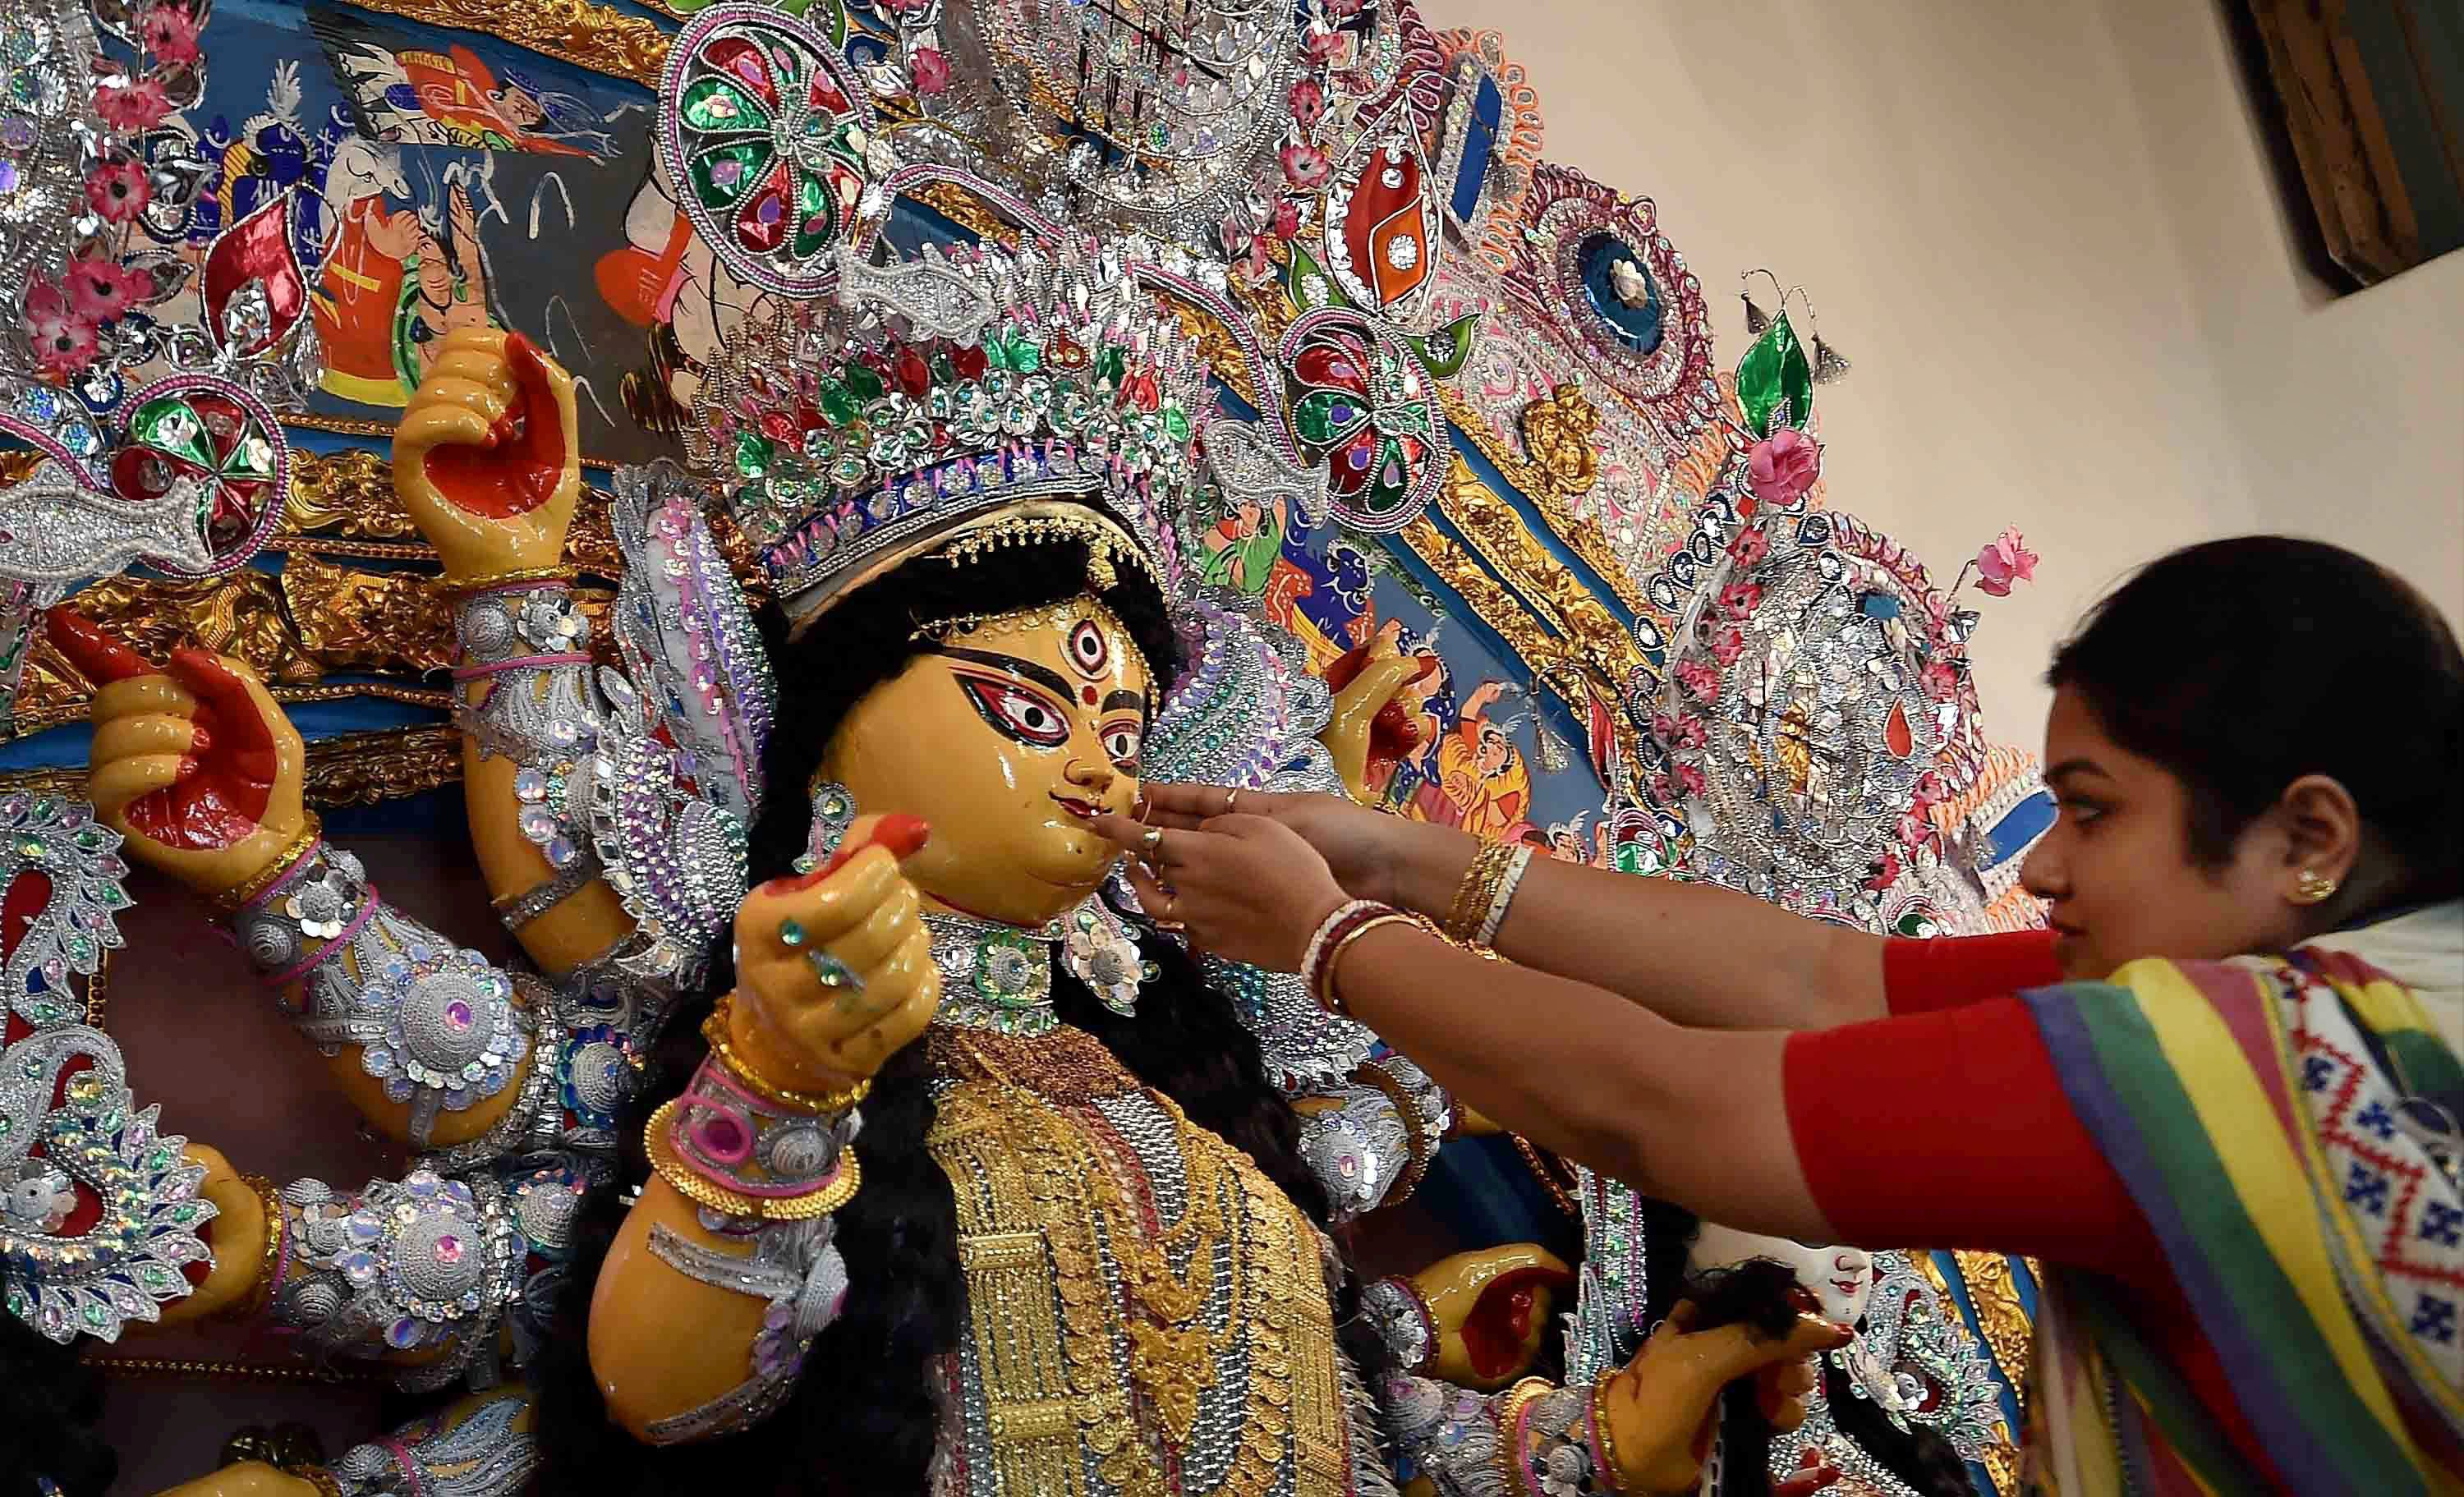 An idol of Goddess Durga being being decorated with gold ornaments during Durga Puja festival in Kolkata on Tuesday. Credit: PTI/Ashok Bhaumik